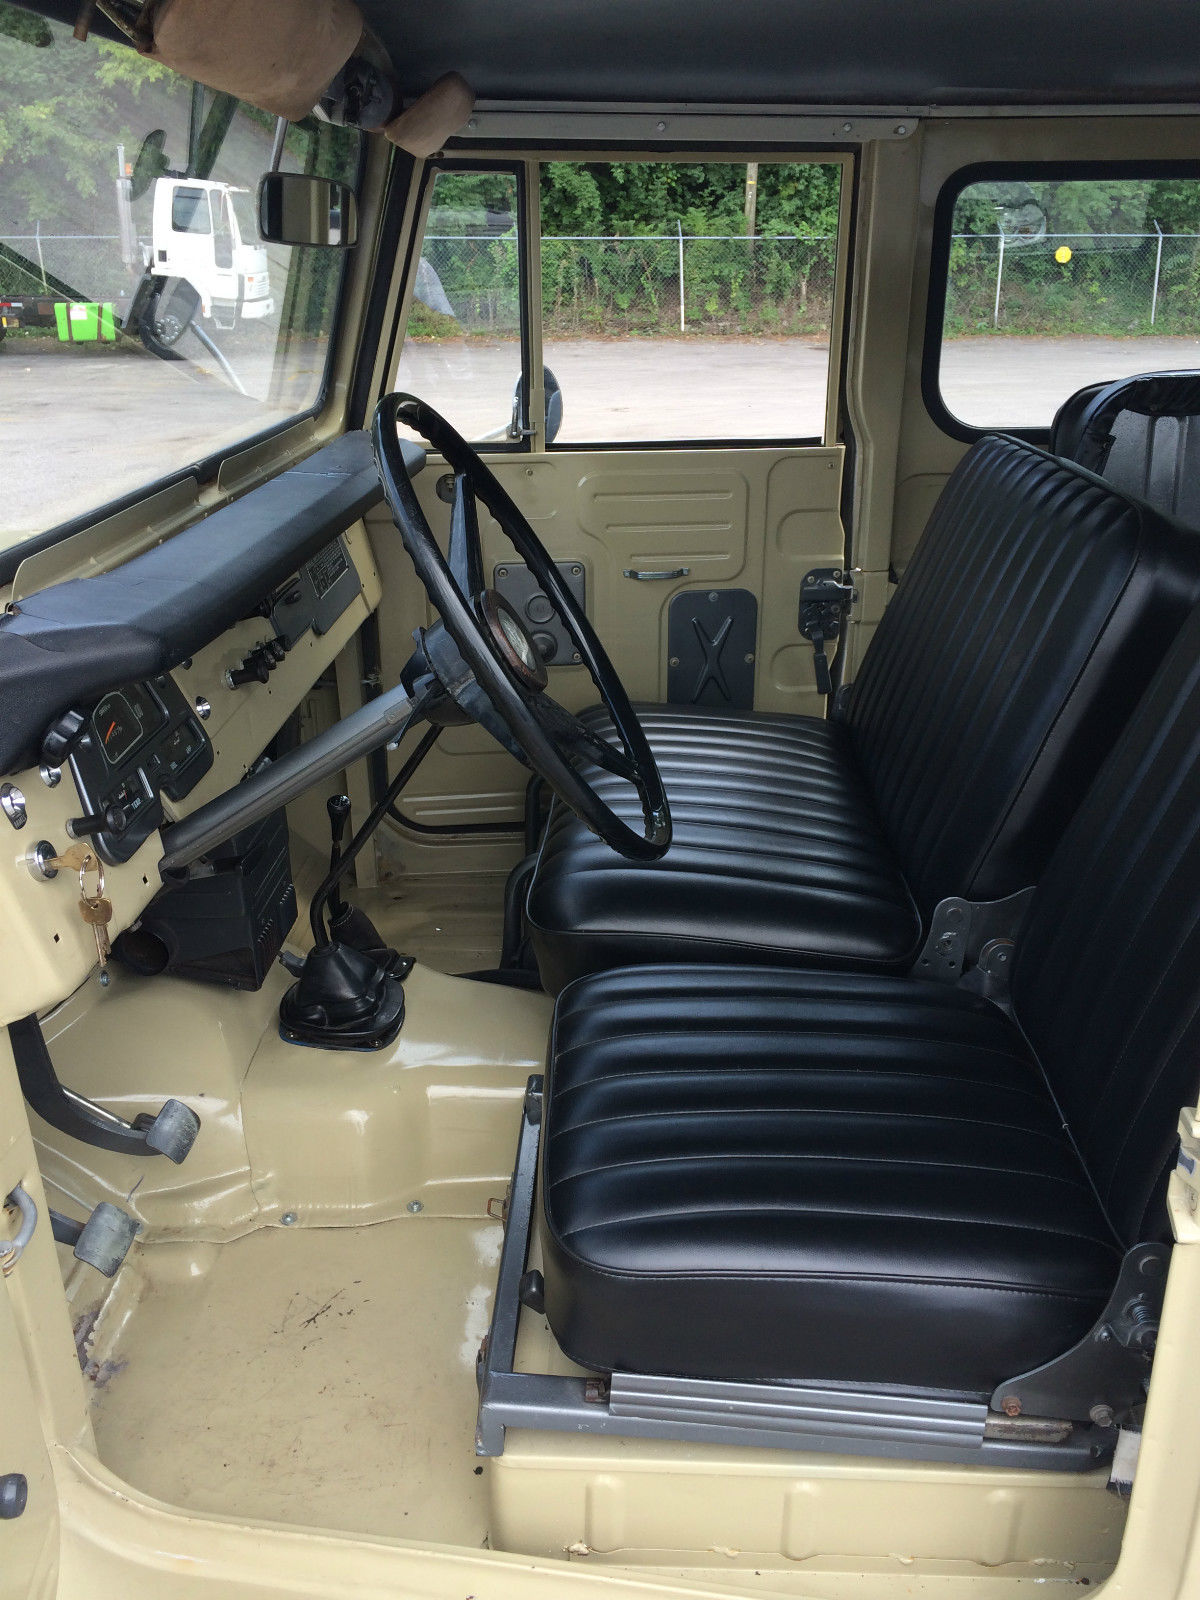 Toyota For Sale By Owner >> eBay Find: 500-Mile '71 Toyota Land Cruiser - autoevolution